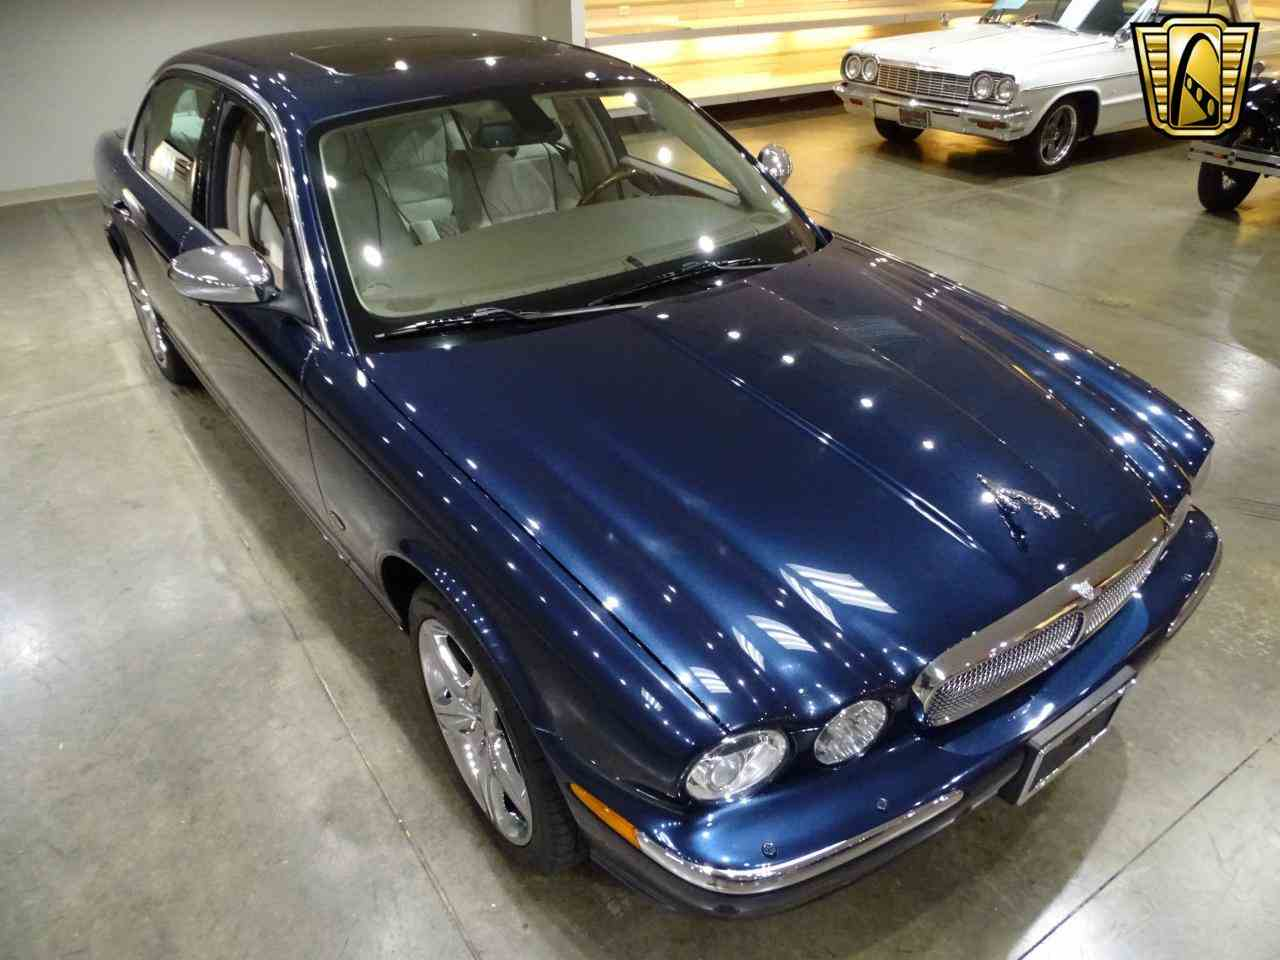 Large Picture of 2006 Jaguar XJ8 located in O'Fallon Illinois Offered by Gateway Classic Cars - St. Louis - MFNT